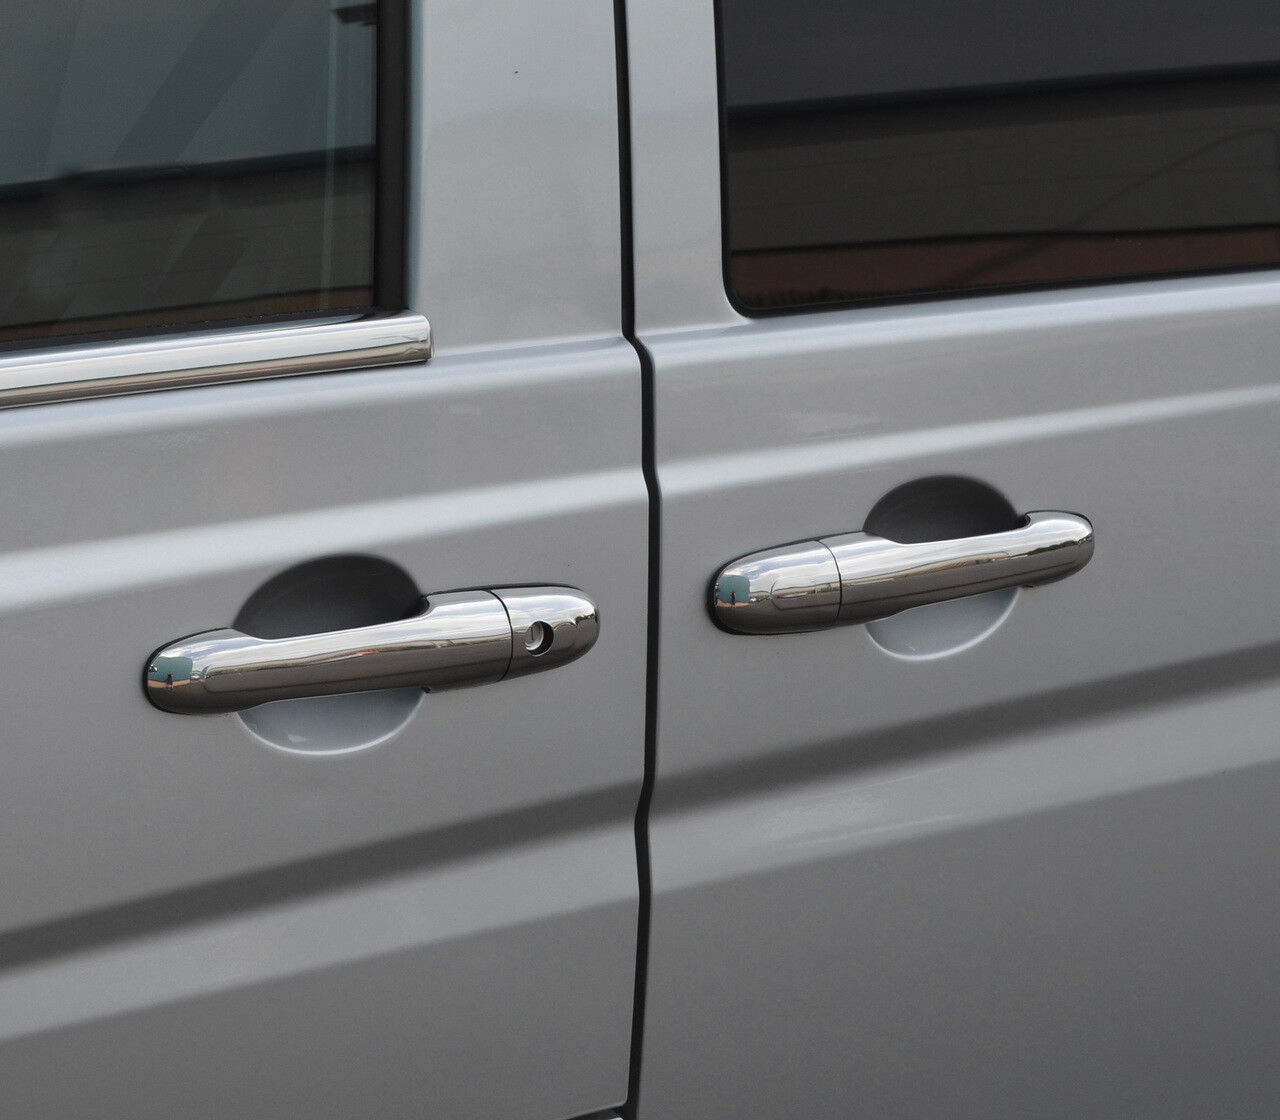 MERCEDES VITO W639 CHROME DOOR HANDLE INSERT TRIM CUPS SET COVERS 2004 ON